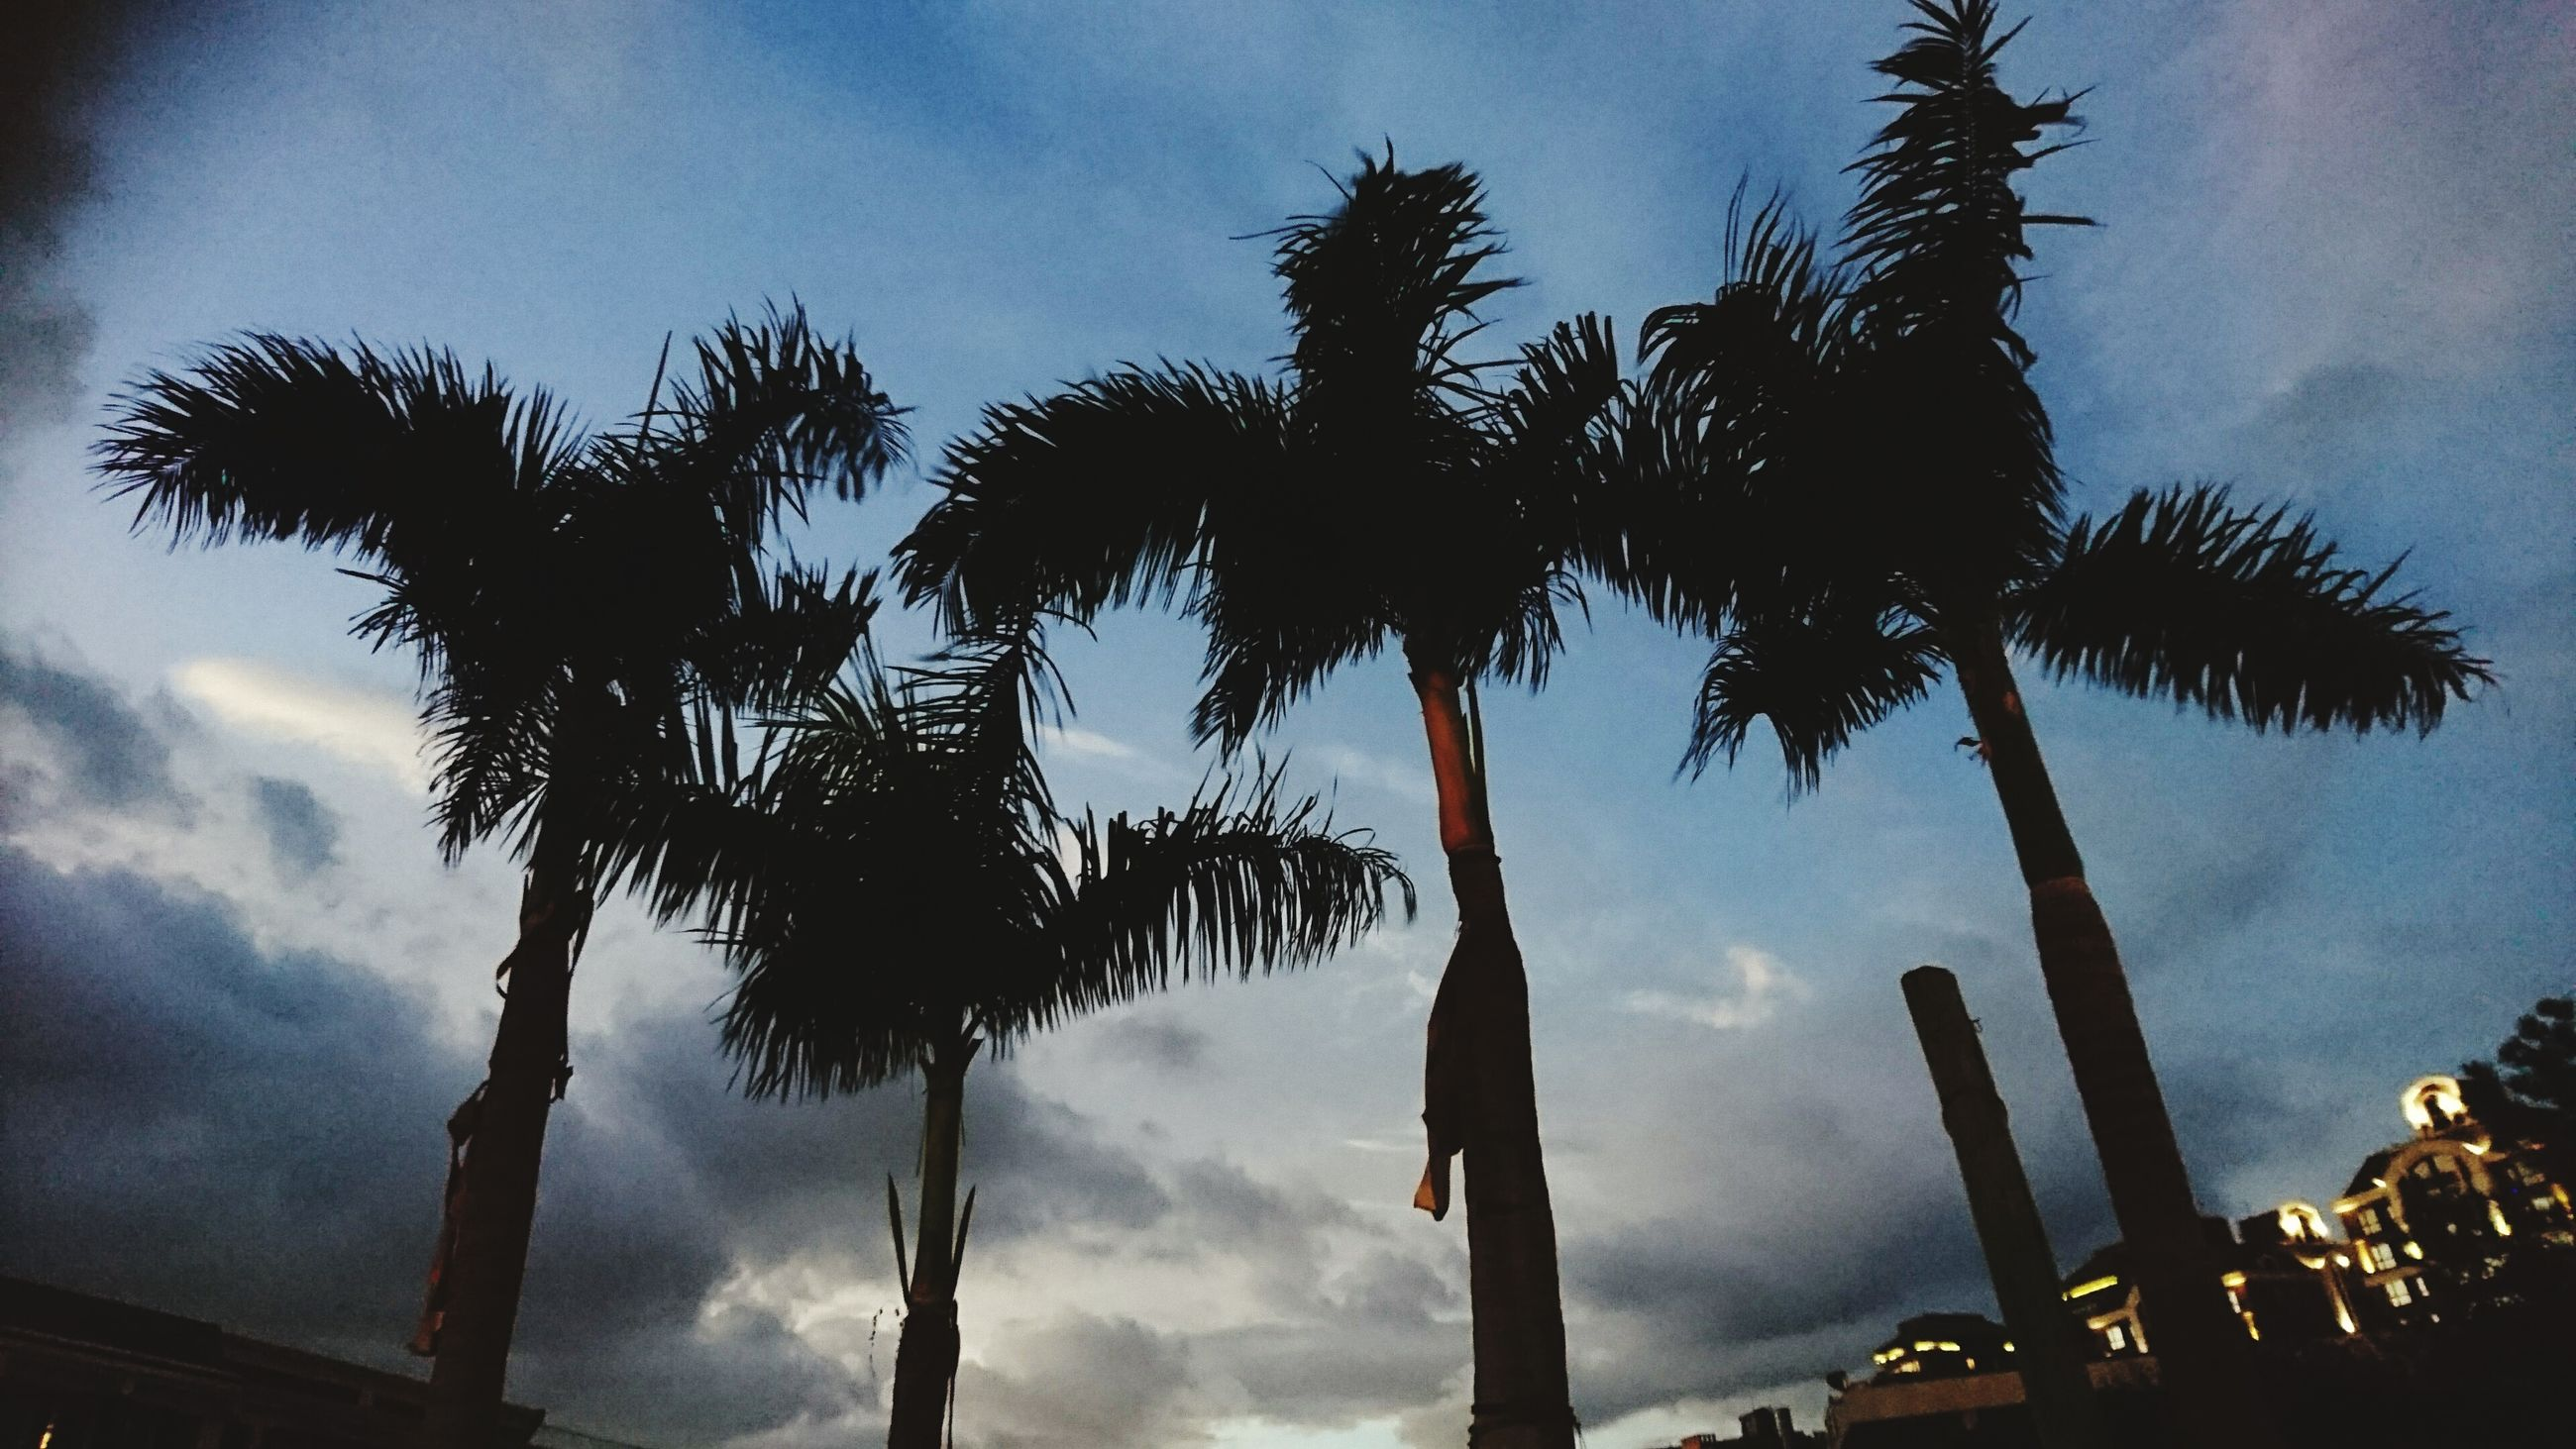 palm tree, low angle view, silhouette, tree, sky, growth, tree trunk, tall - high, cloud - sky, outdoors, nature, tranquility, tall, beauty in nature, tranquil scene, scenics, outline, bright, no people